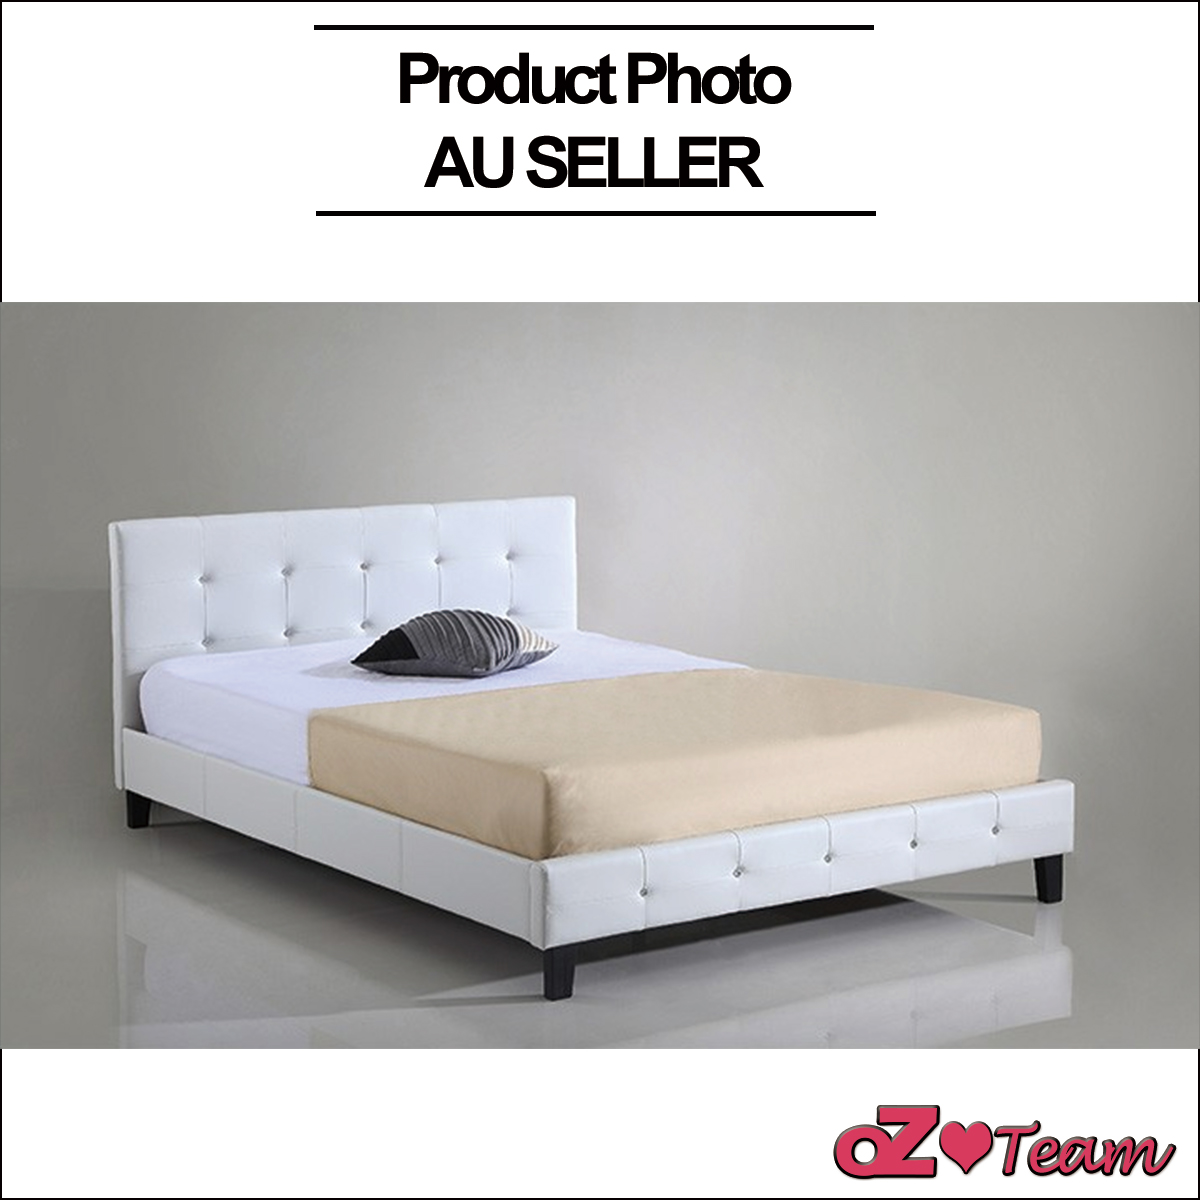 PU LEATHER BED FRAME DOUBLE QUEEN KING SIZE Bedding Mattress Option ...